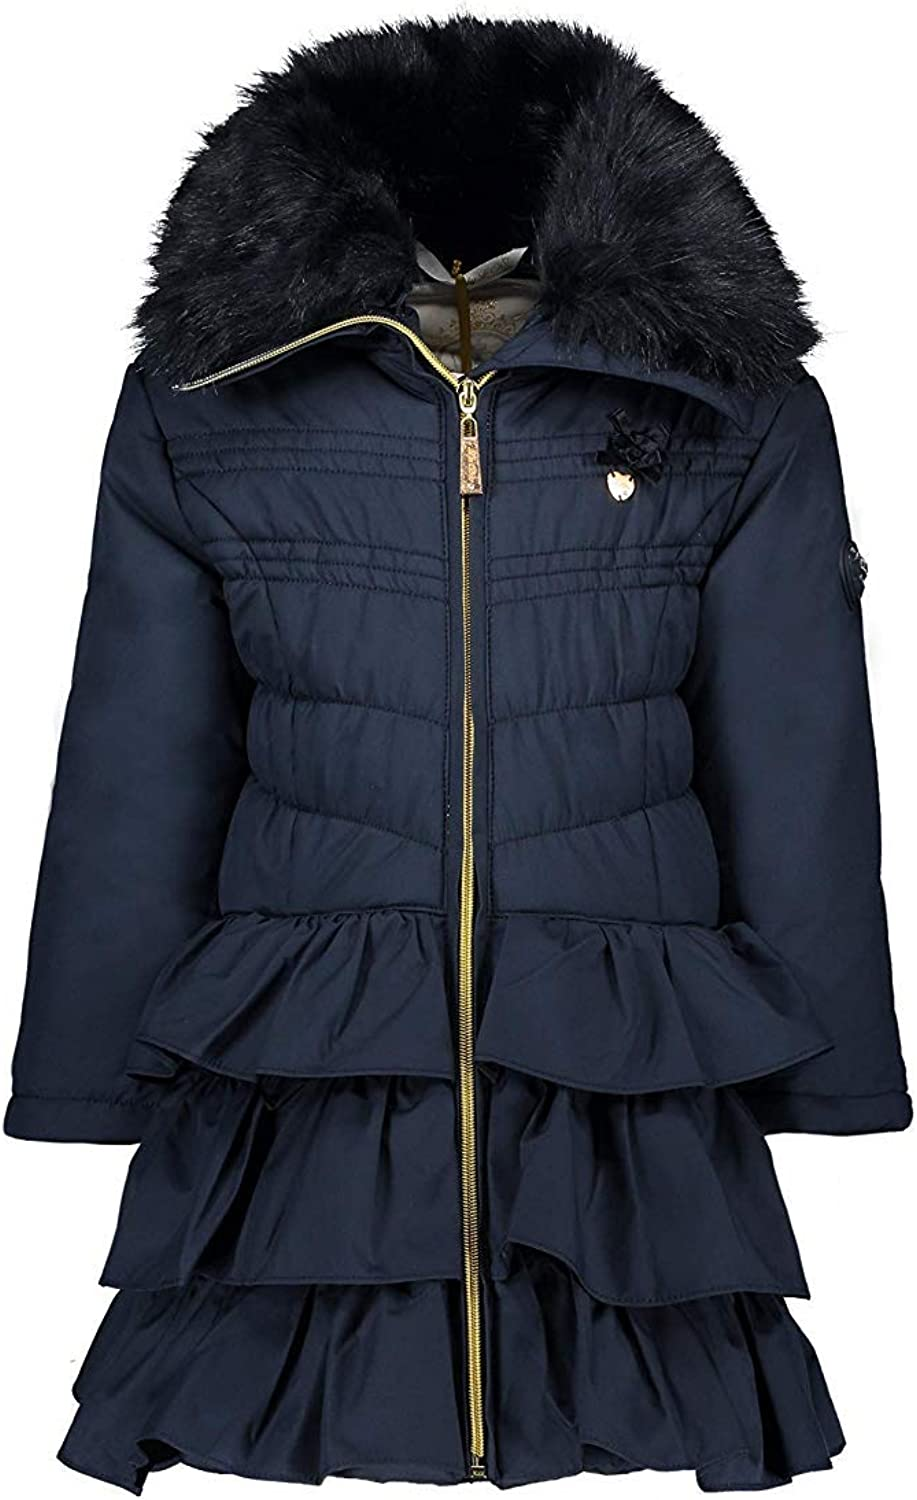 Le Chic Girl Girl Winter Coat Winter Jacket Long Blue Navy C907 5214 190